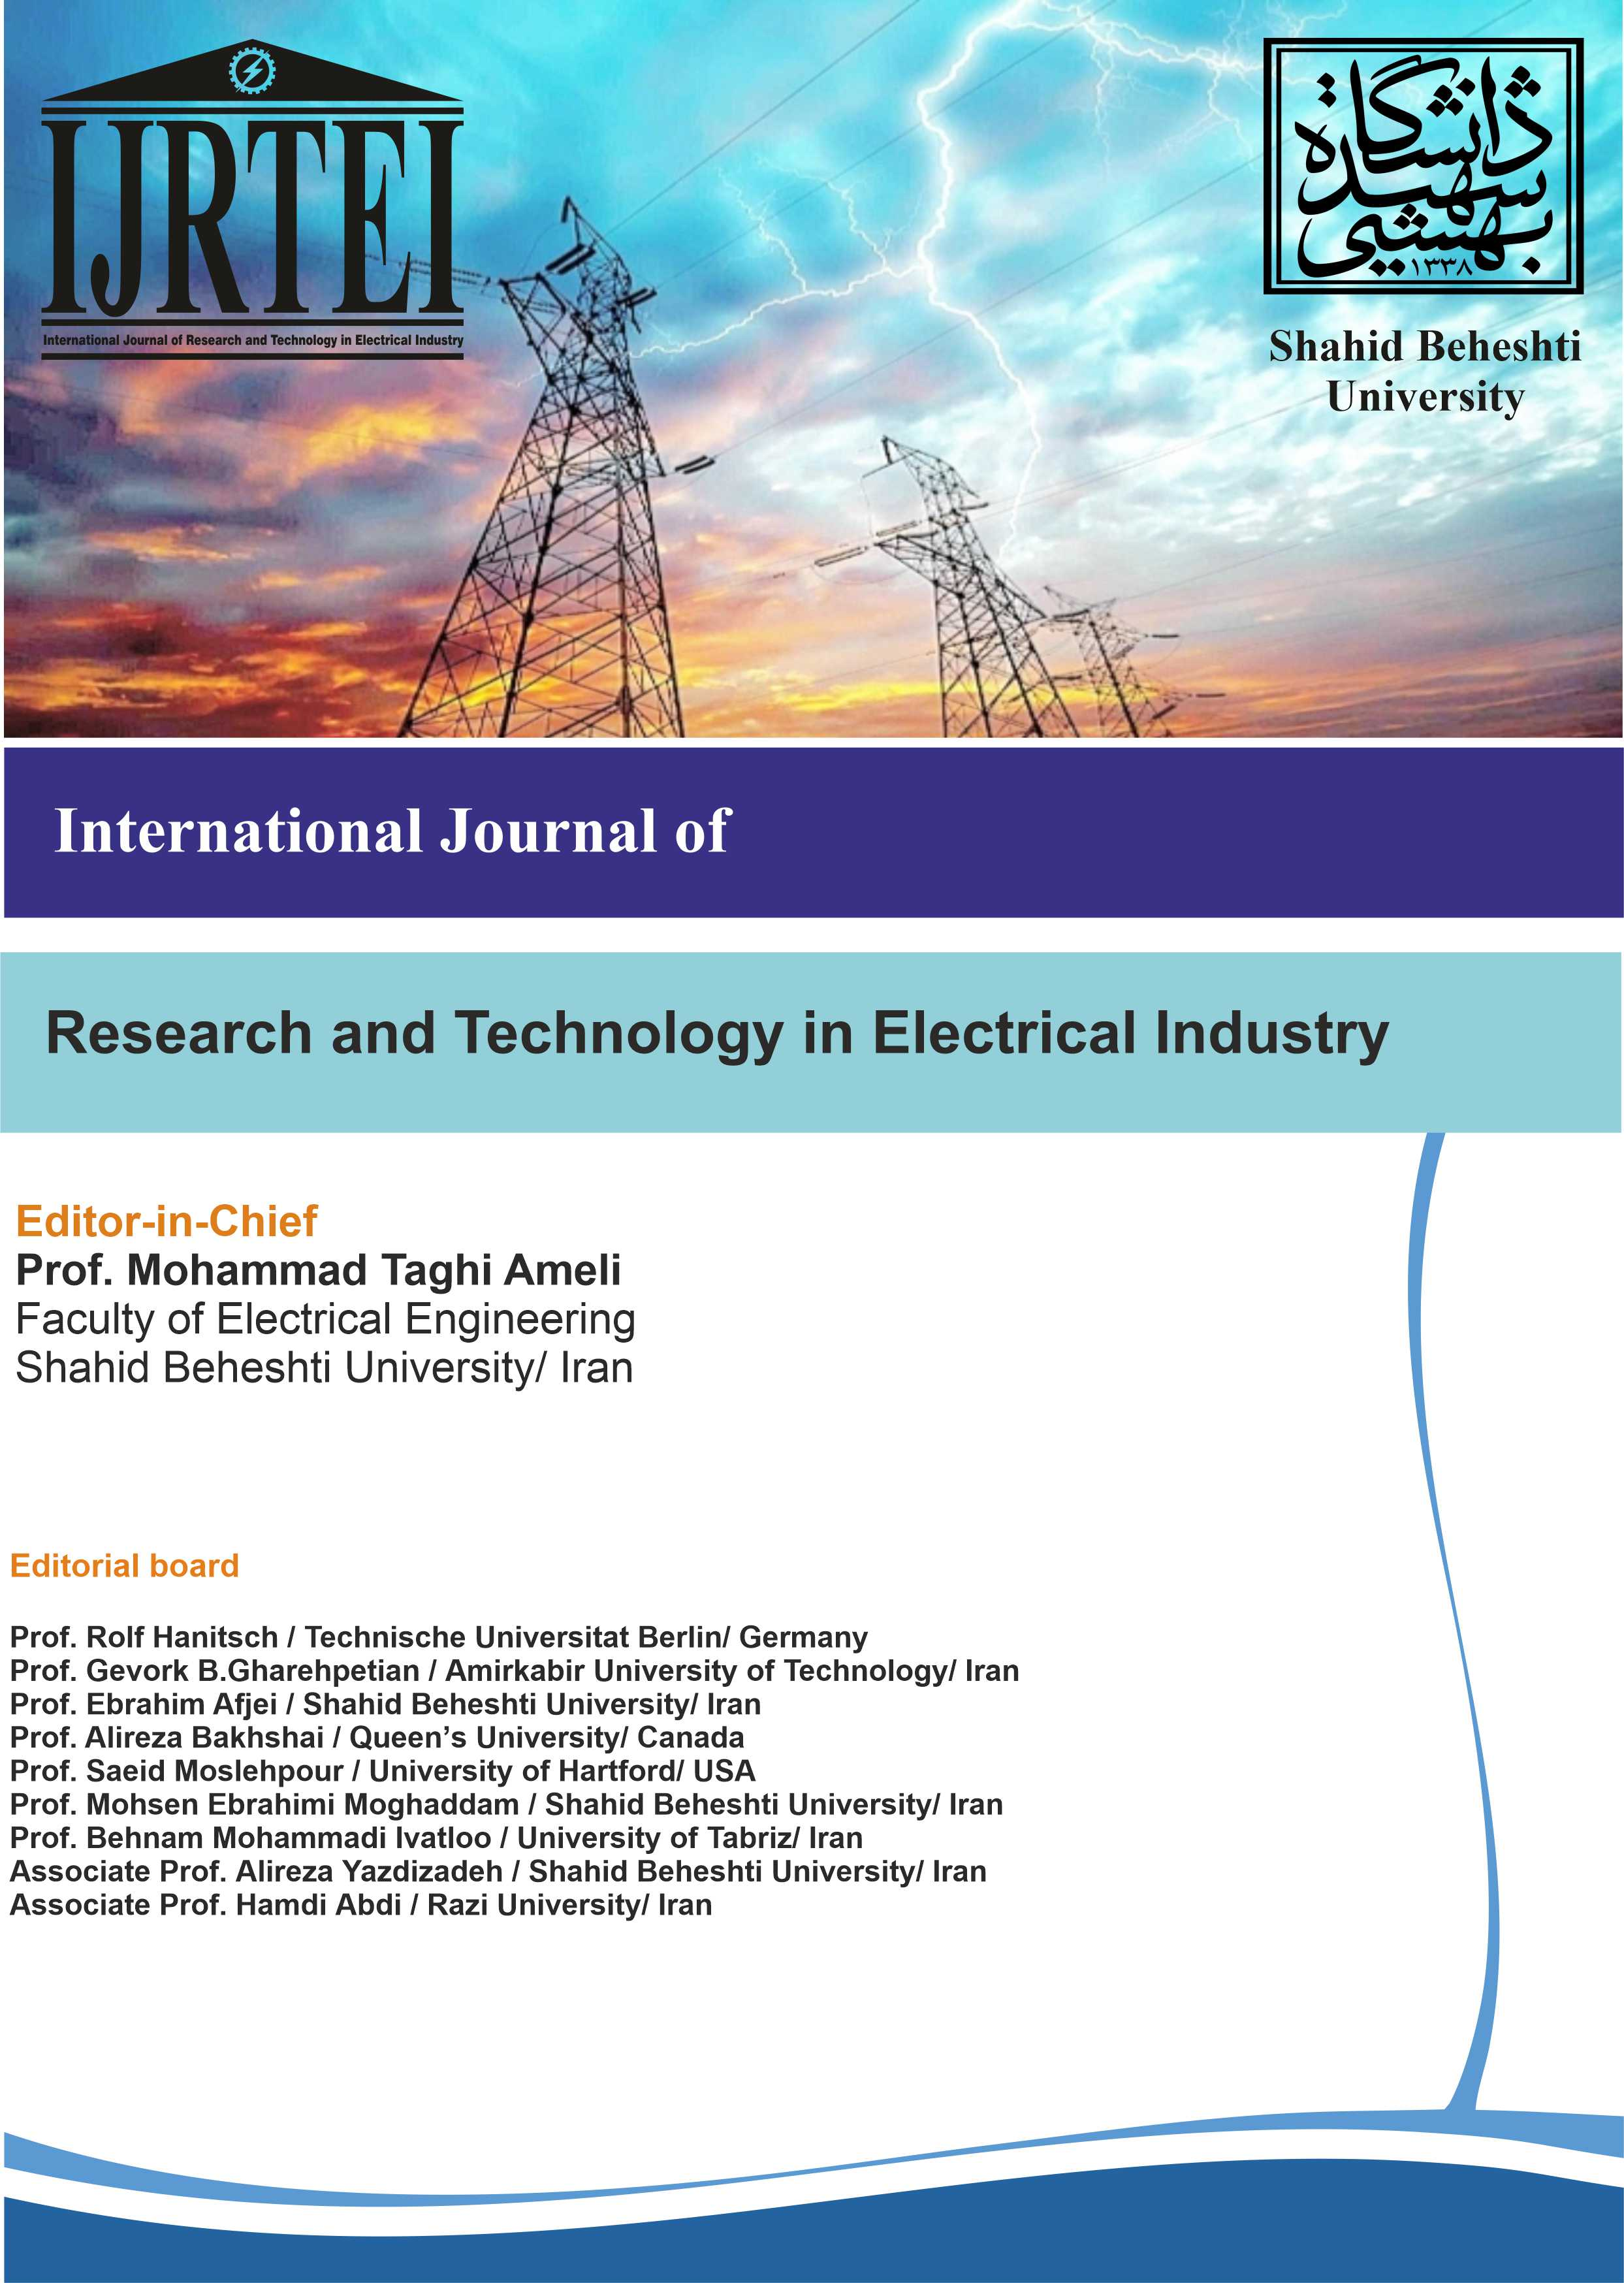 Research and Technology in the Electrical Industry